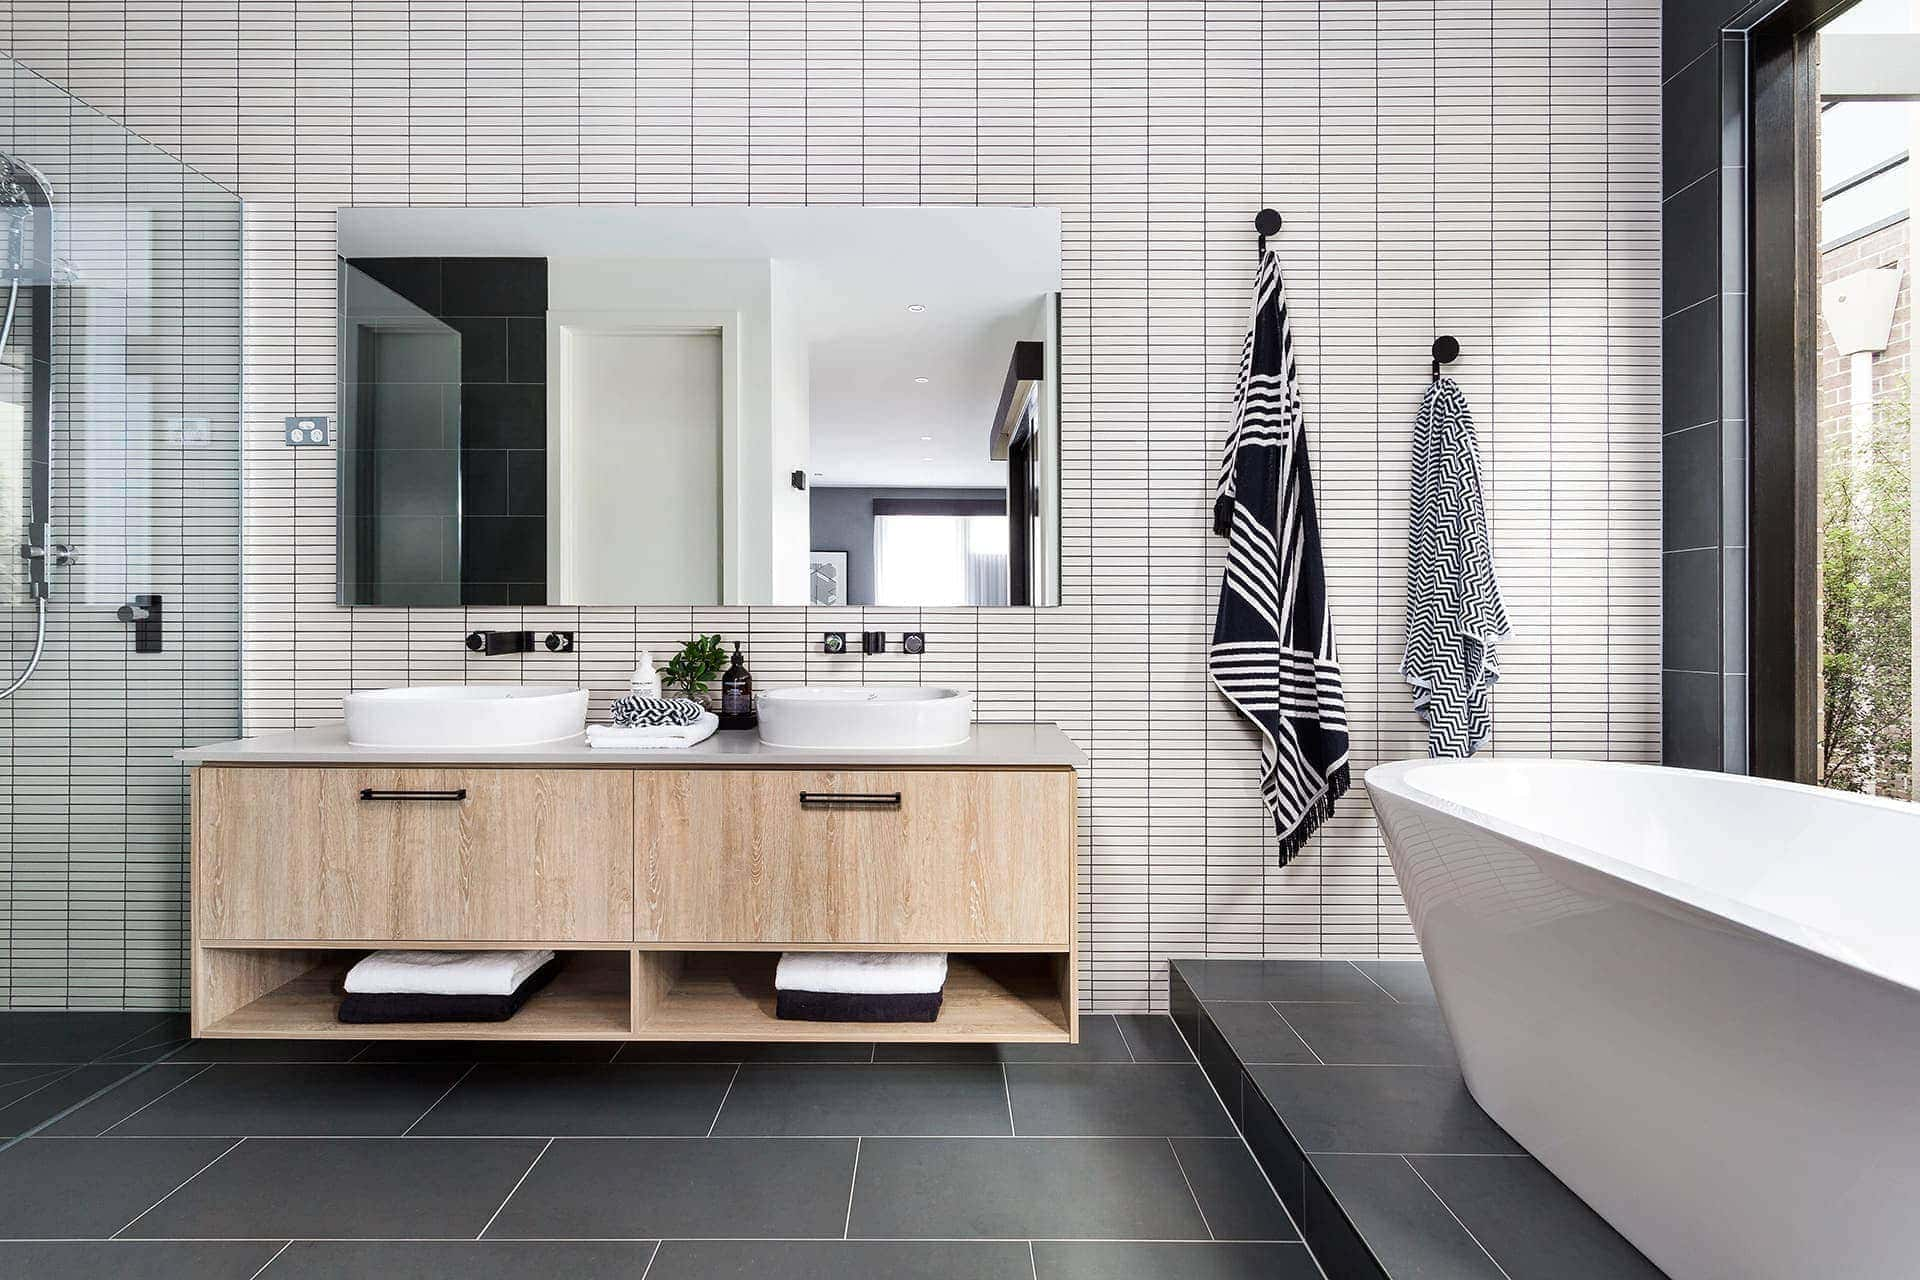 ... Modernist Interior Design Style. Bathroom With White Rectangular  Bathroom Tiles Grey Grout And Charcoal Floor Tiles